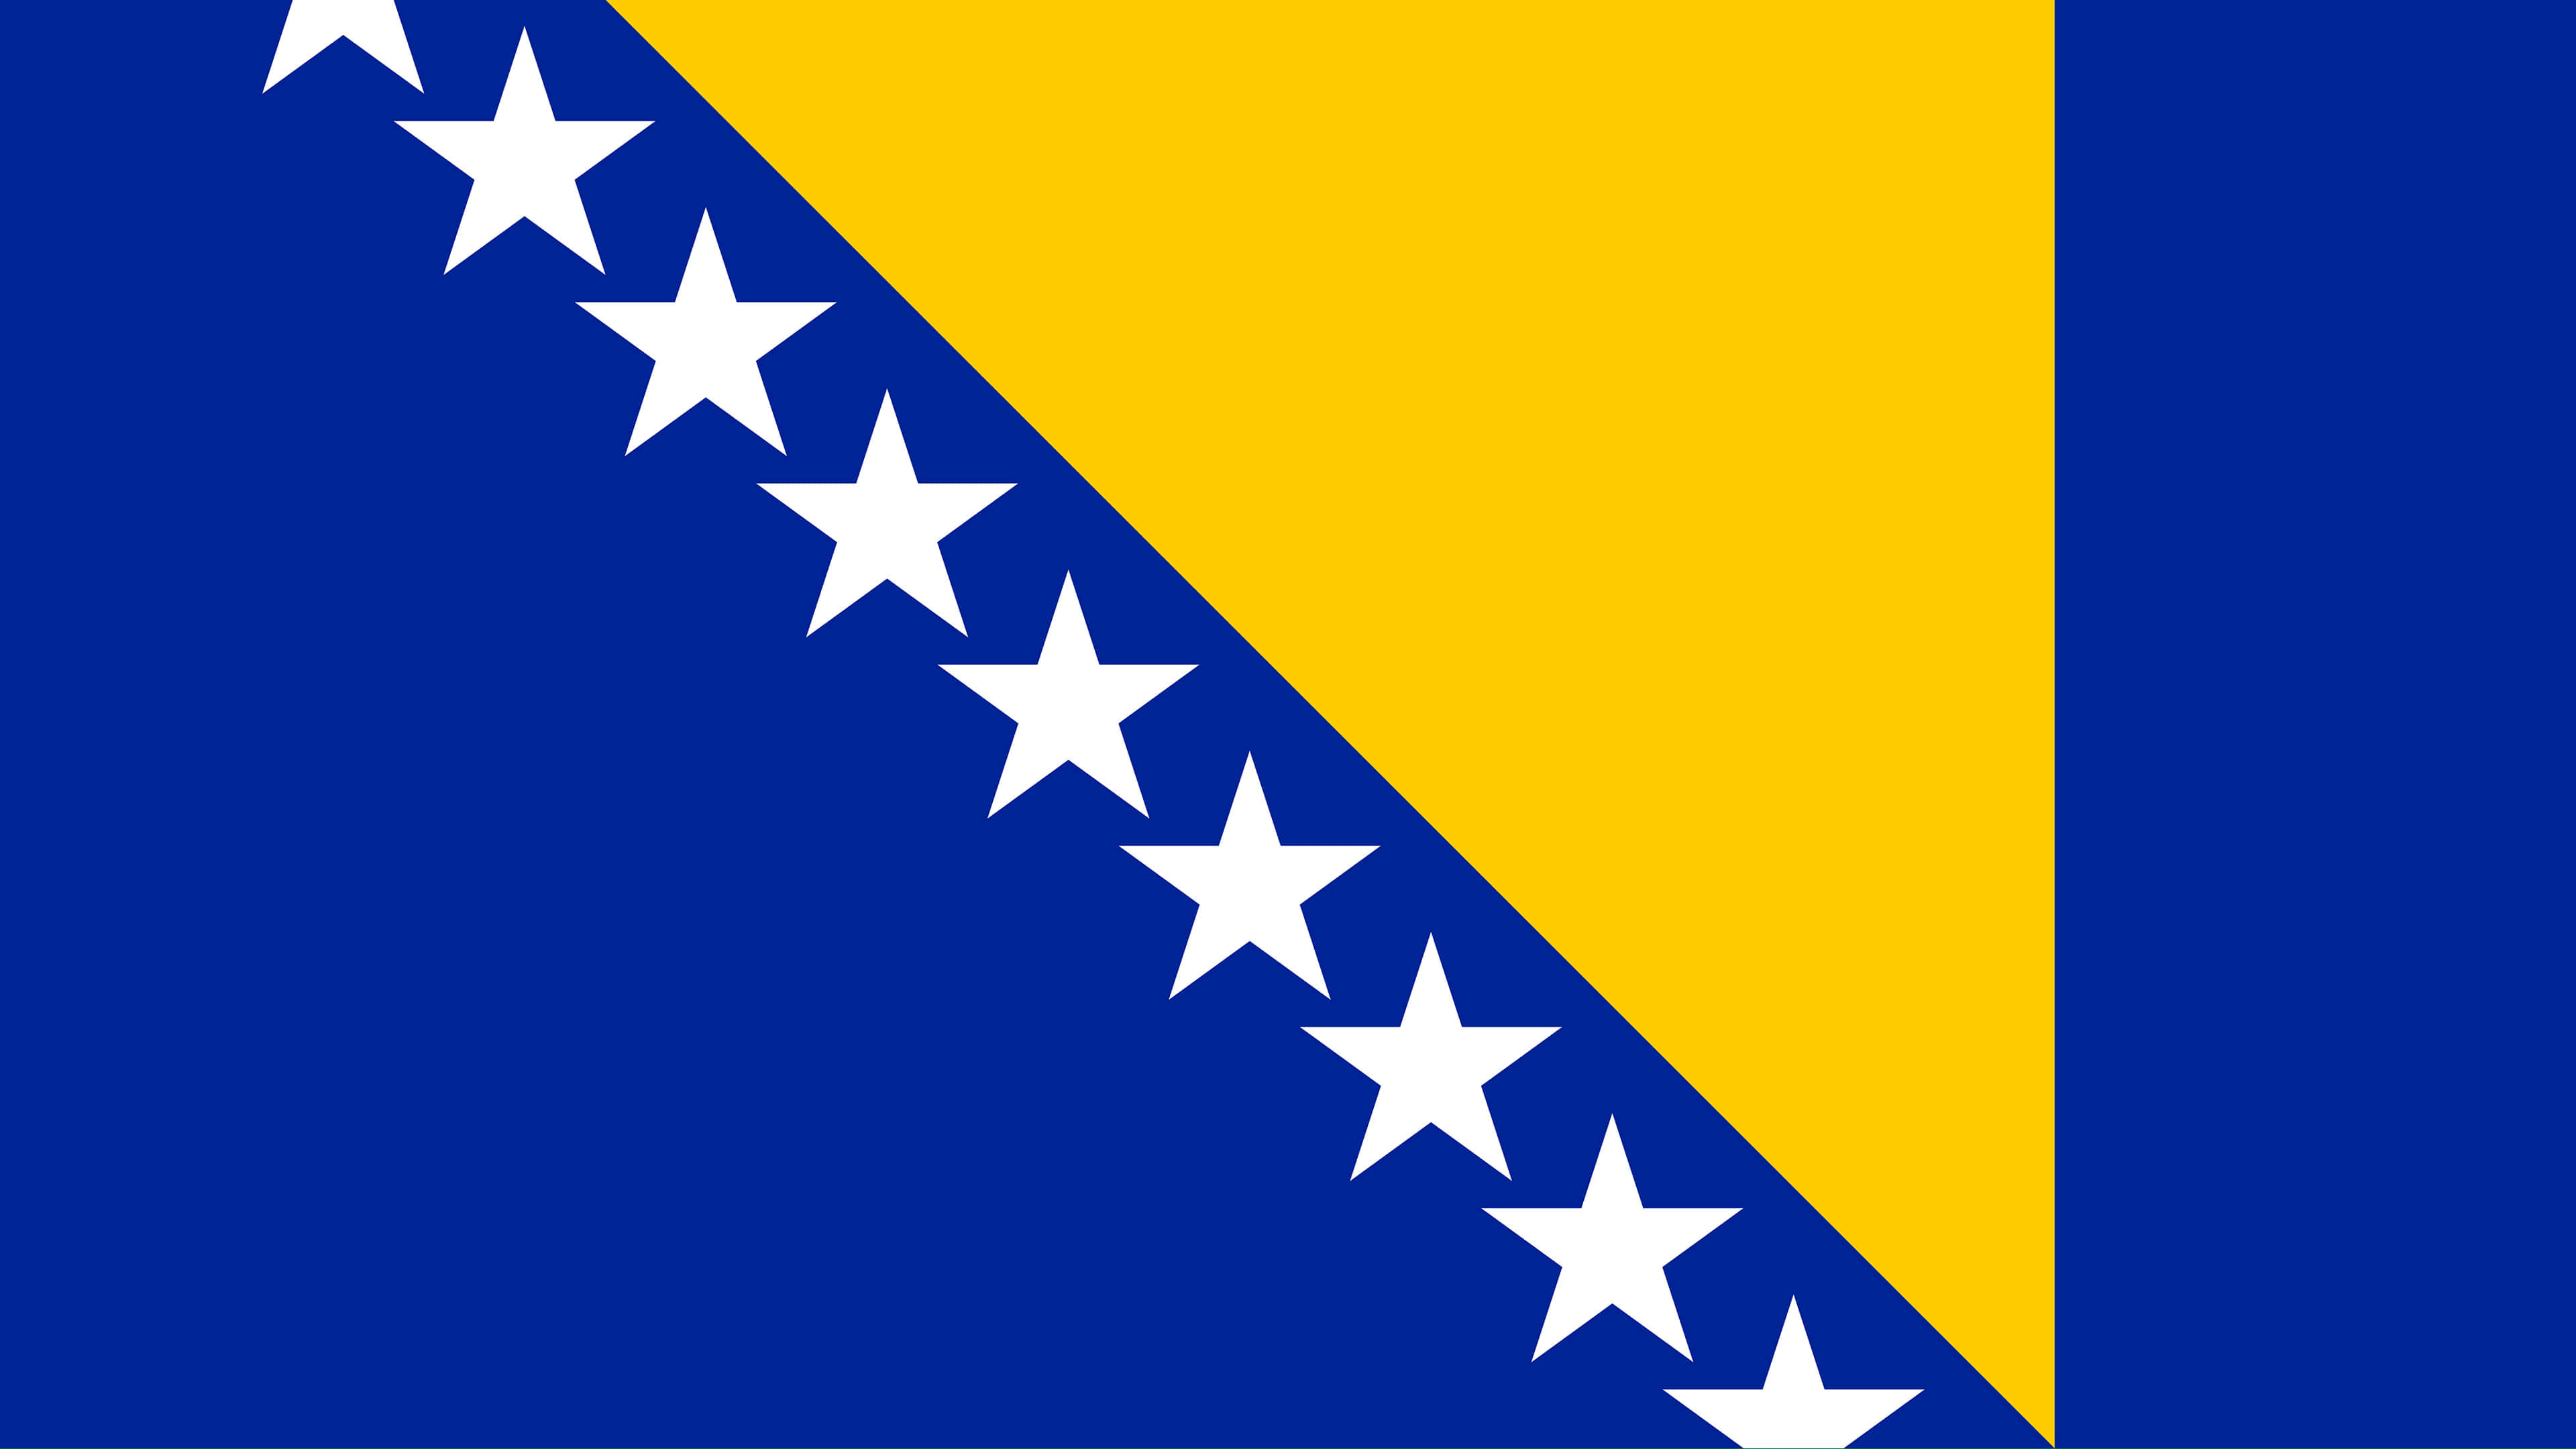 bosnia and herzegovina flag uhd 4k wallpaper